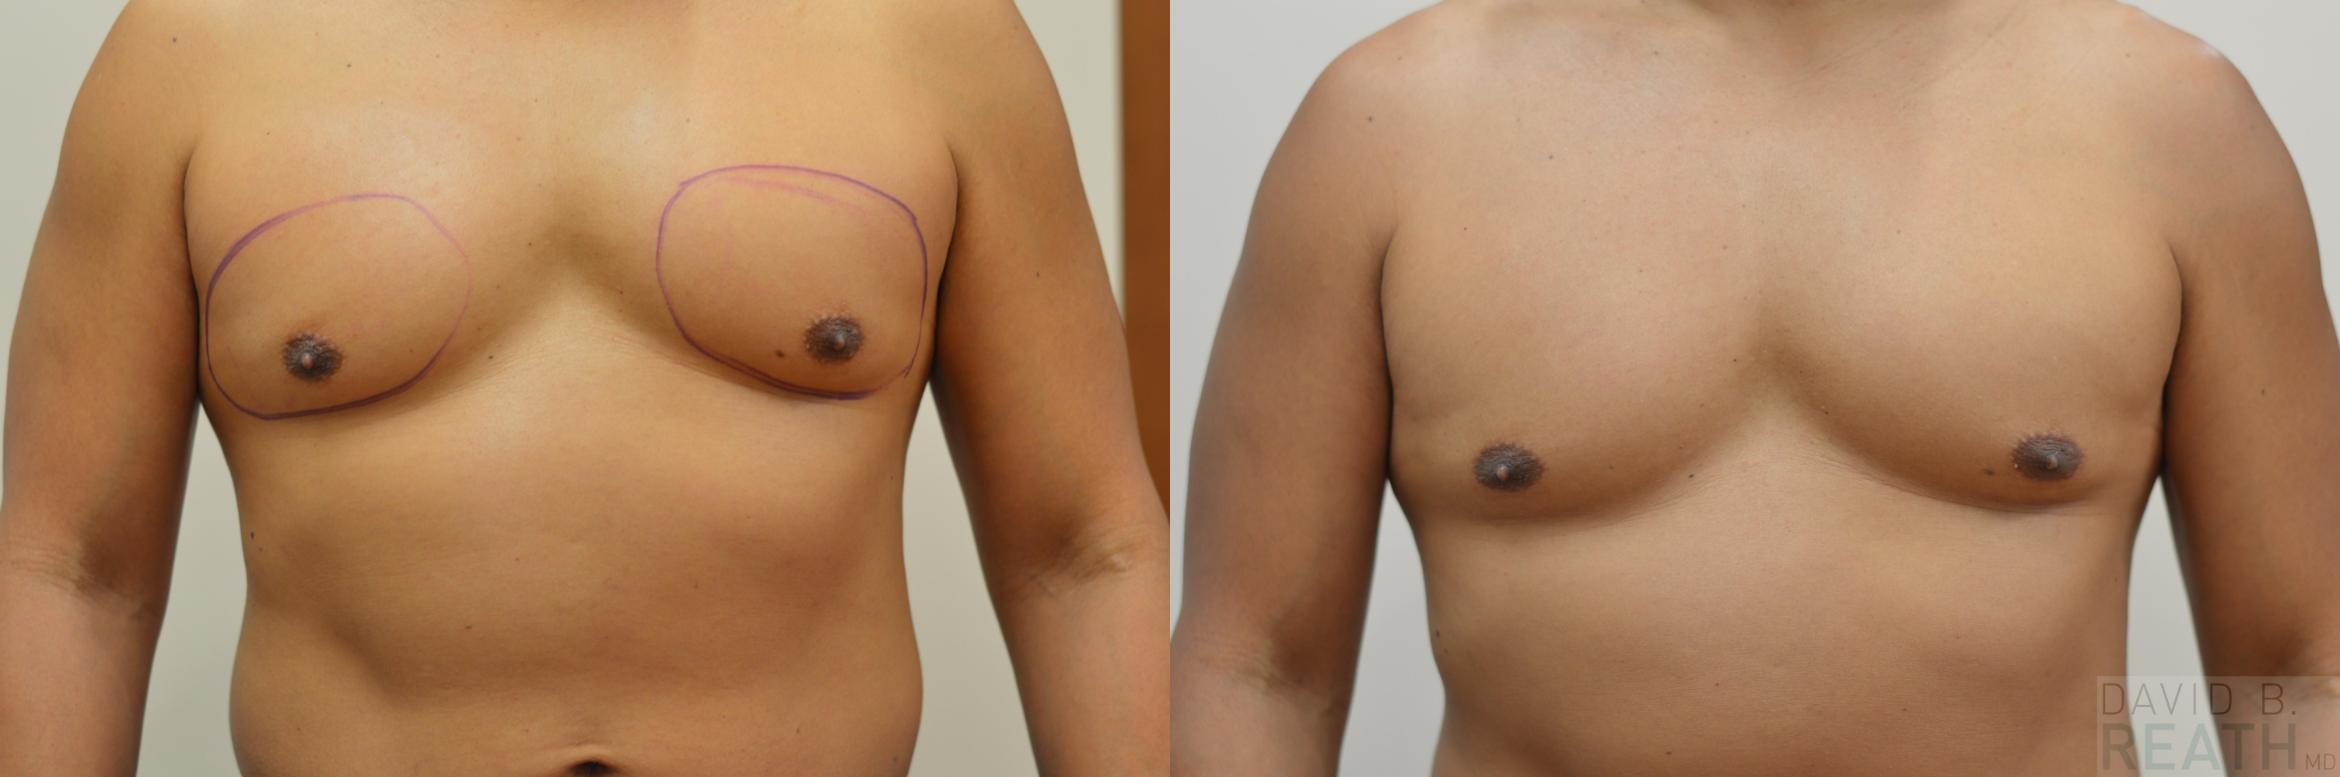 CoolSculpting for Men Before & After Photo | Knoxville, Tennessee | David B. Reath, MD